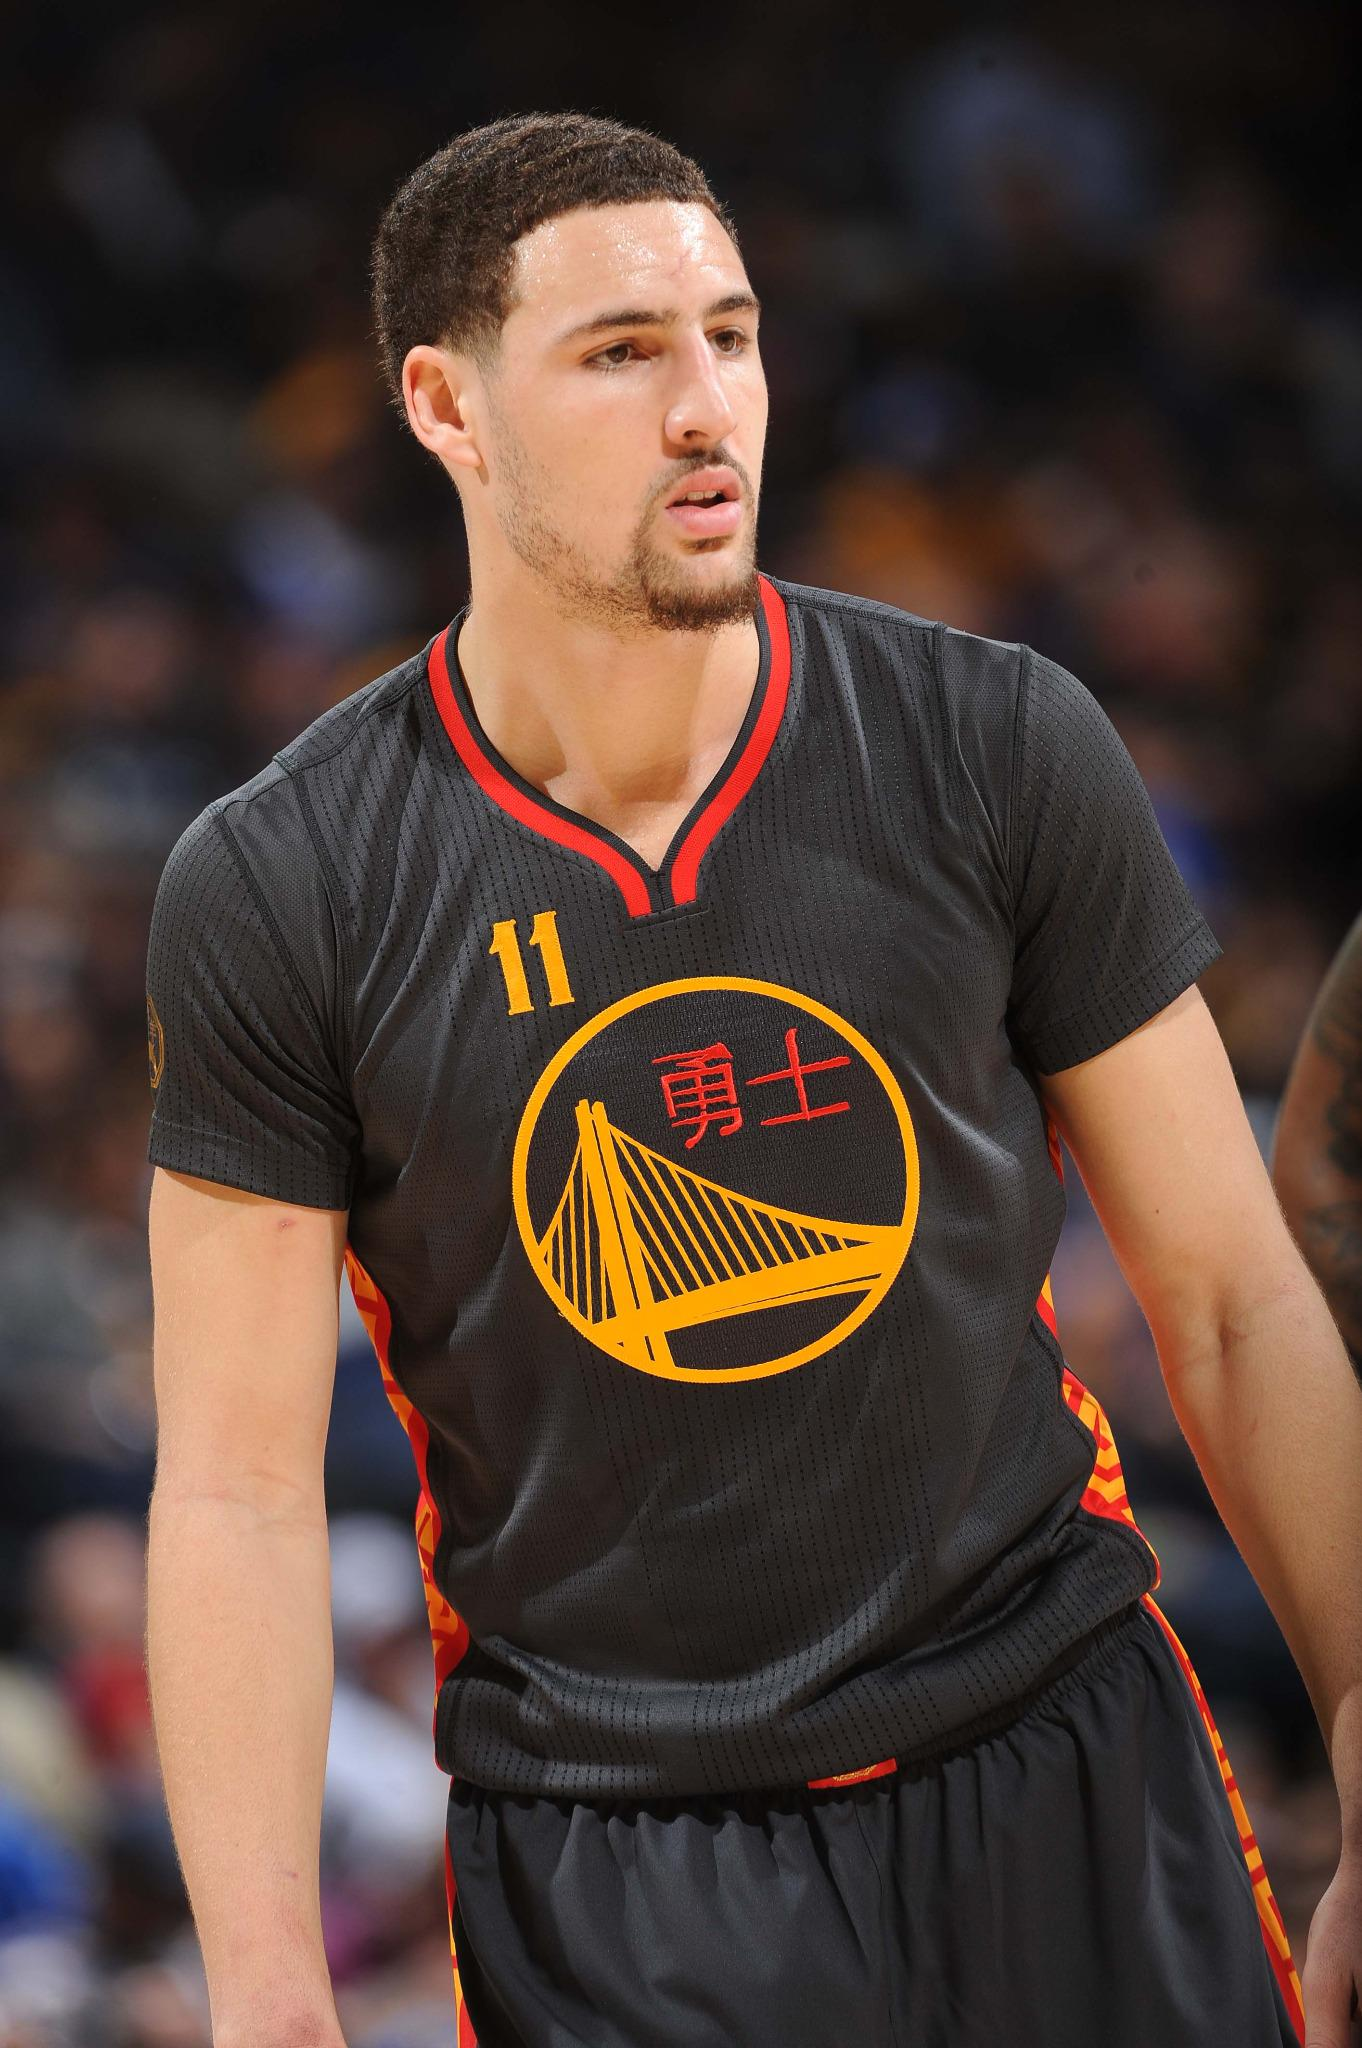 golden state warriors on twitter warriors will sport their chinese new year uniforms tomorrow night at was nbacny shop httptcolkddna5pvp - Warriors Chinese New Year Jersey